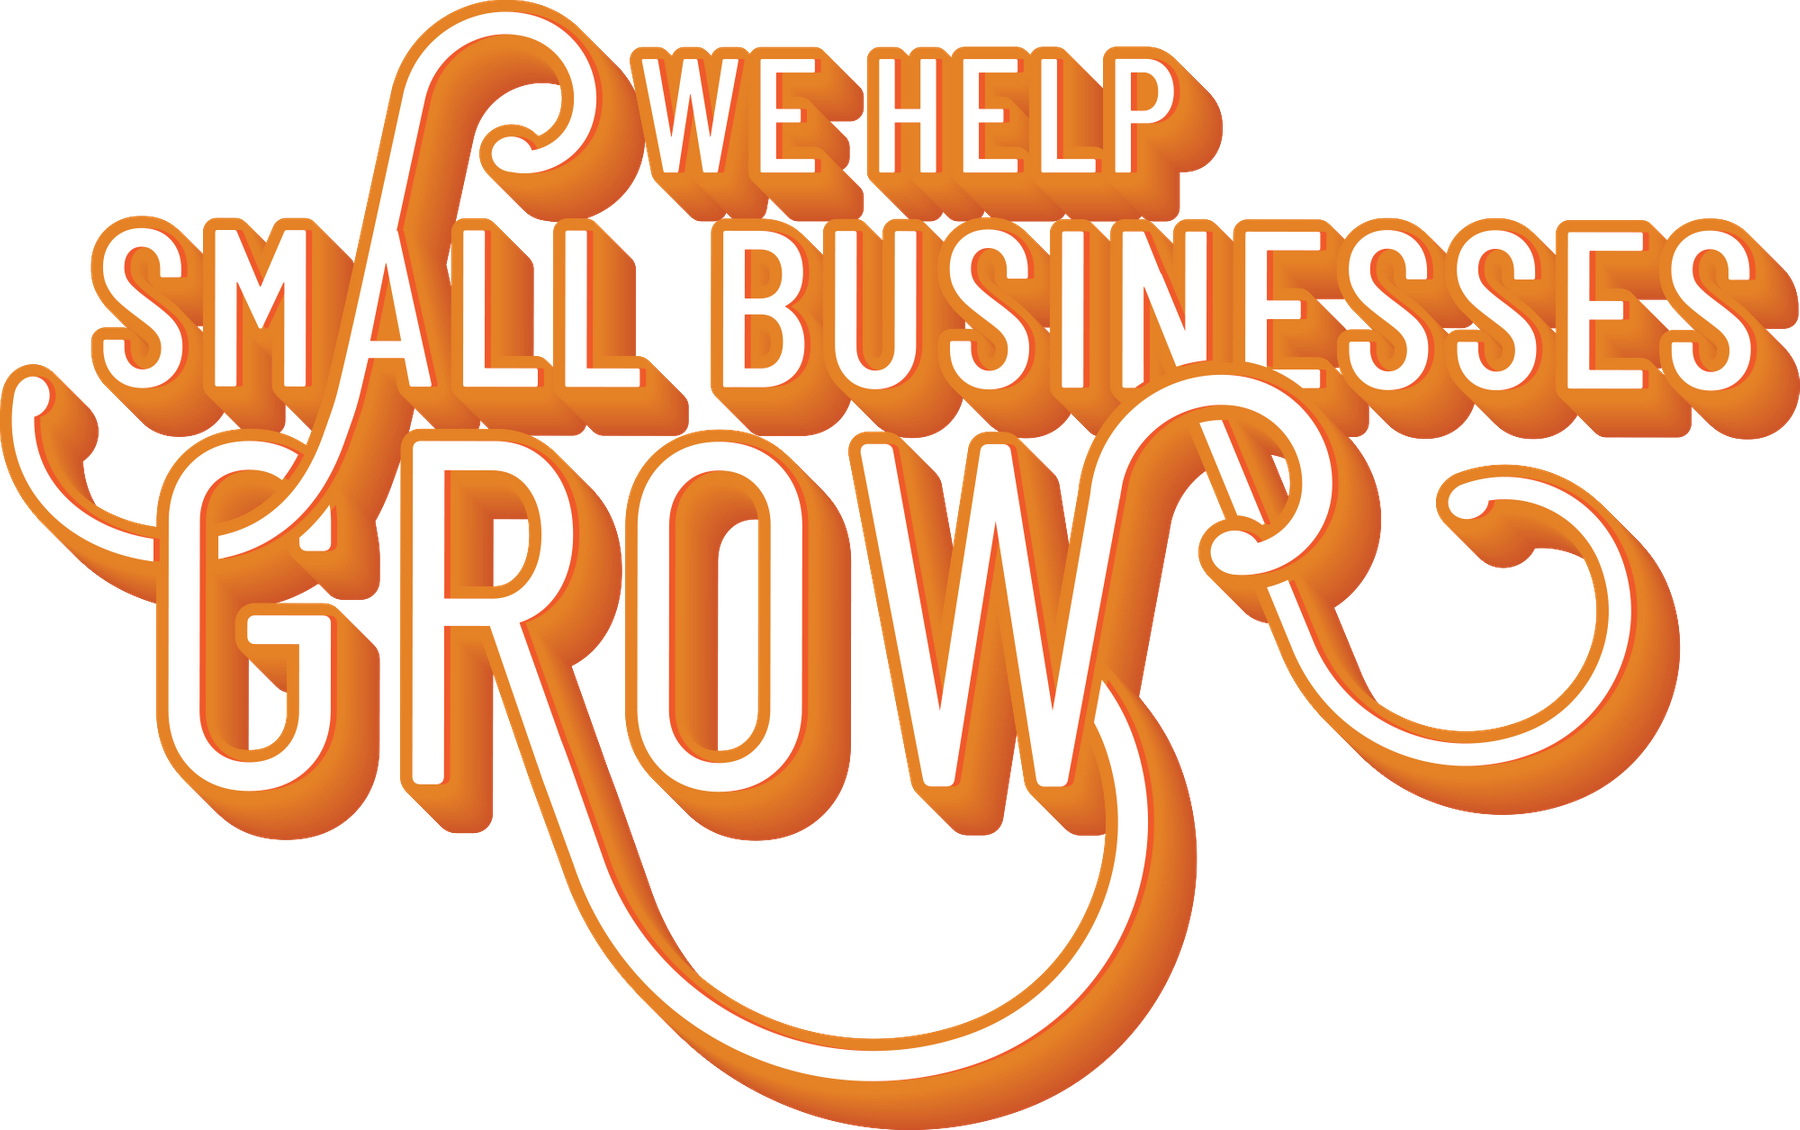 We help small businesses grow